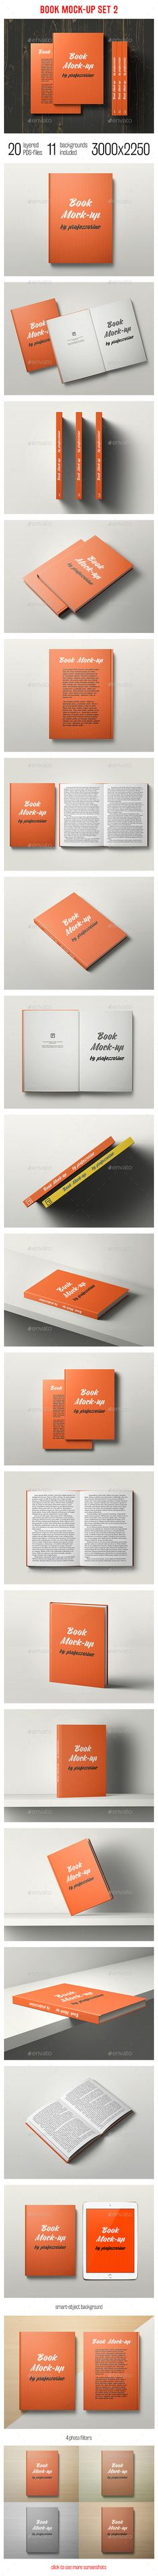 Book Mock-Up Set 2  #page #paper #photorealistic • Available here → http://graphicriver.net/item/book-mockup-set-2/13065930?s_rank=268&ref=pxcr